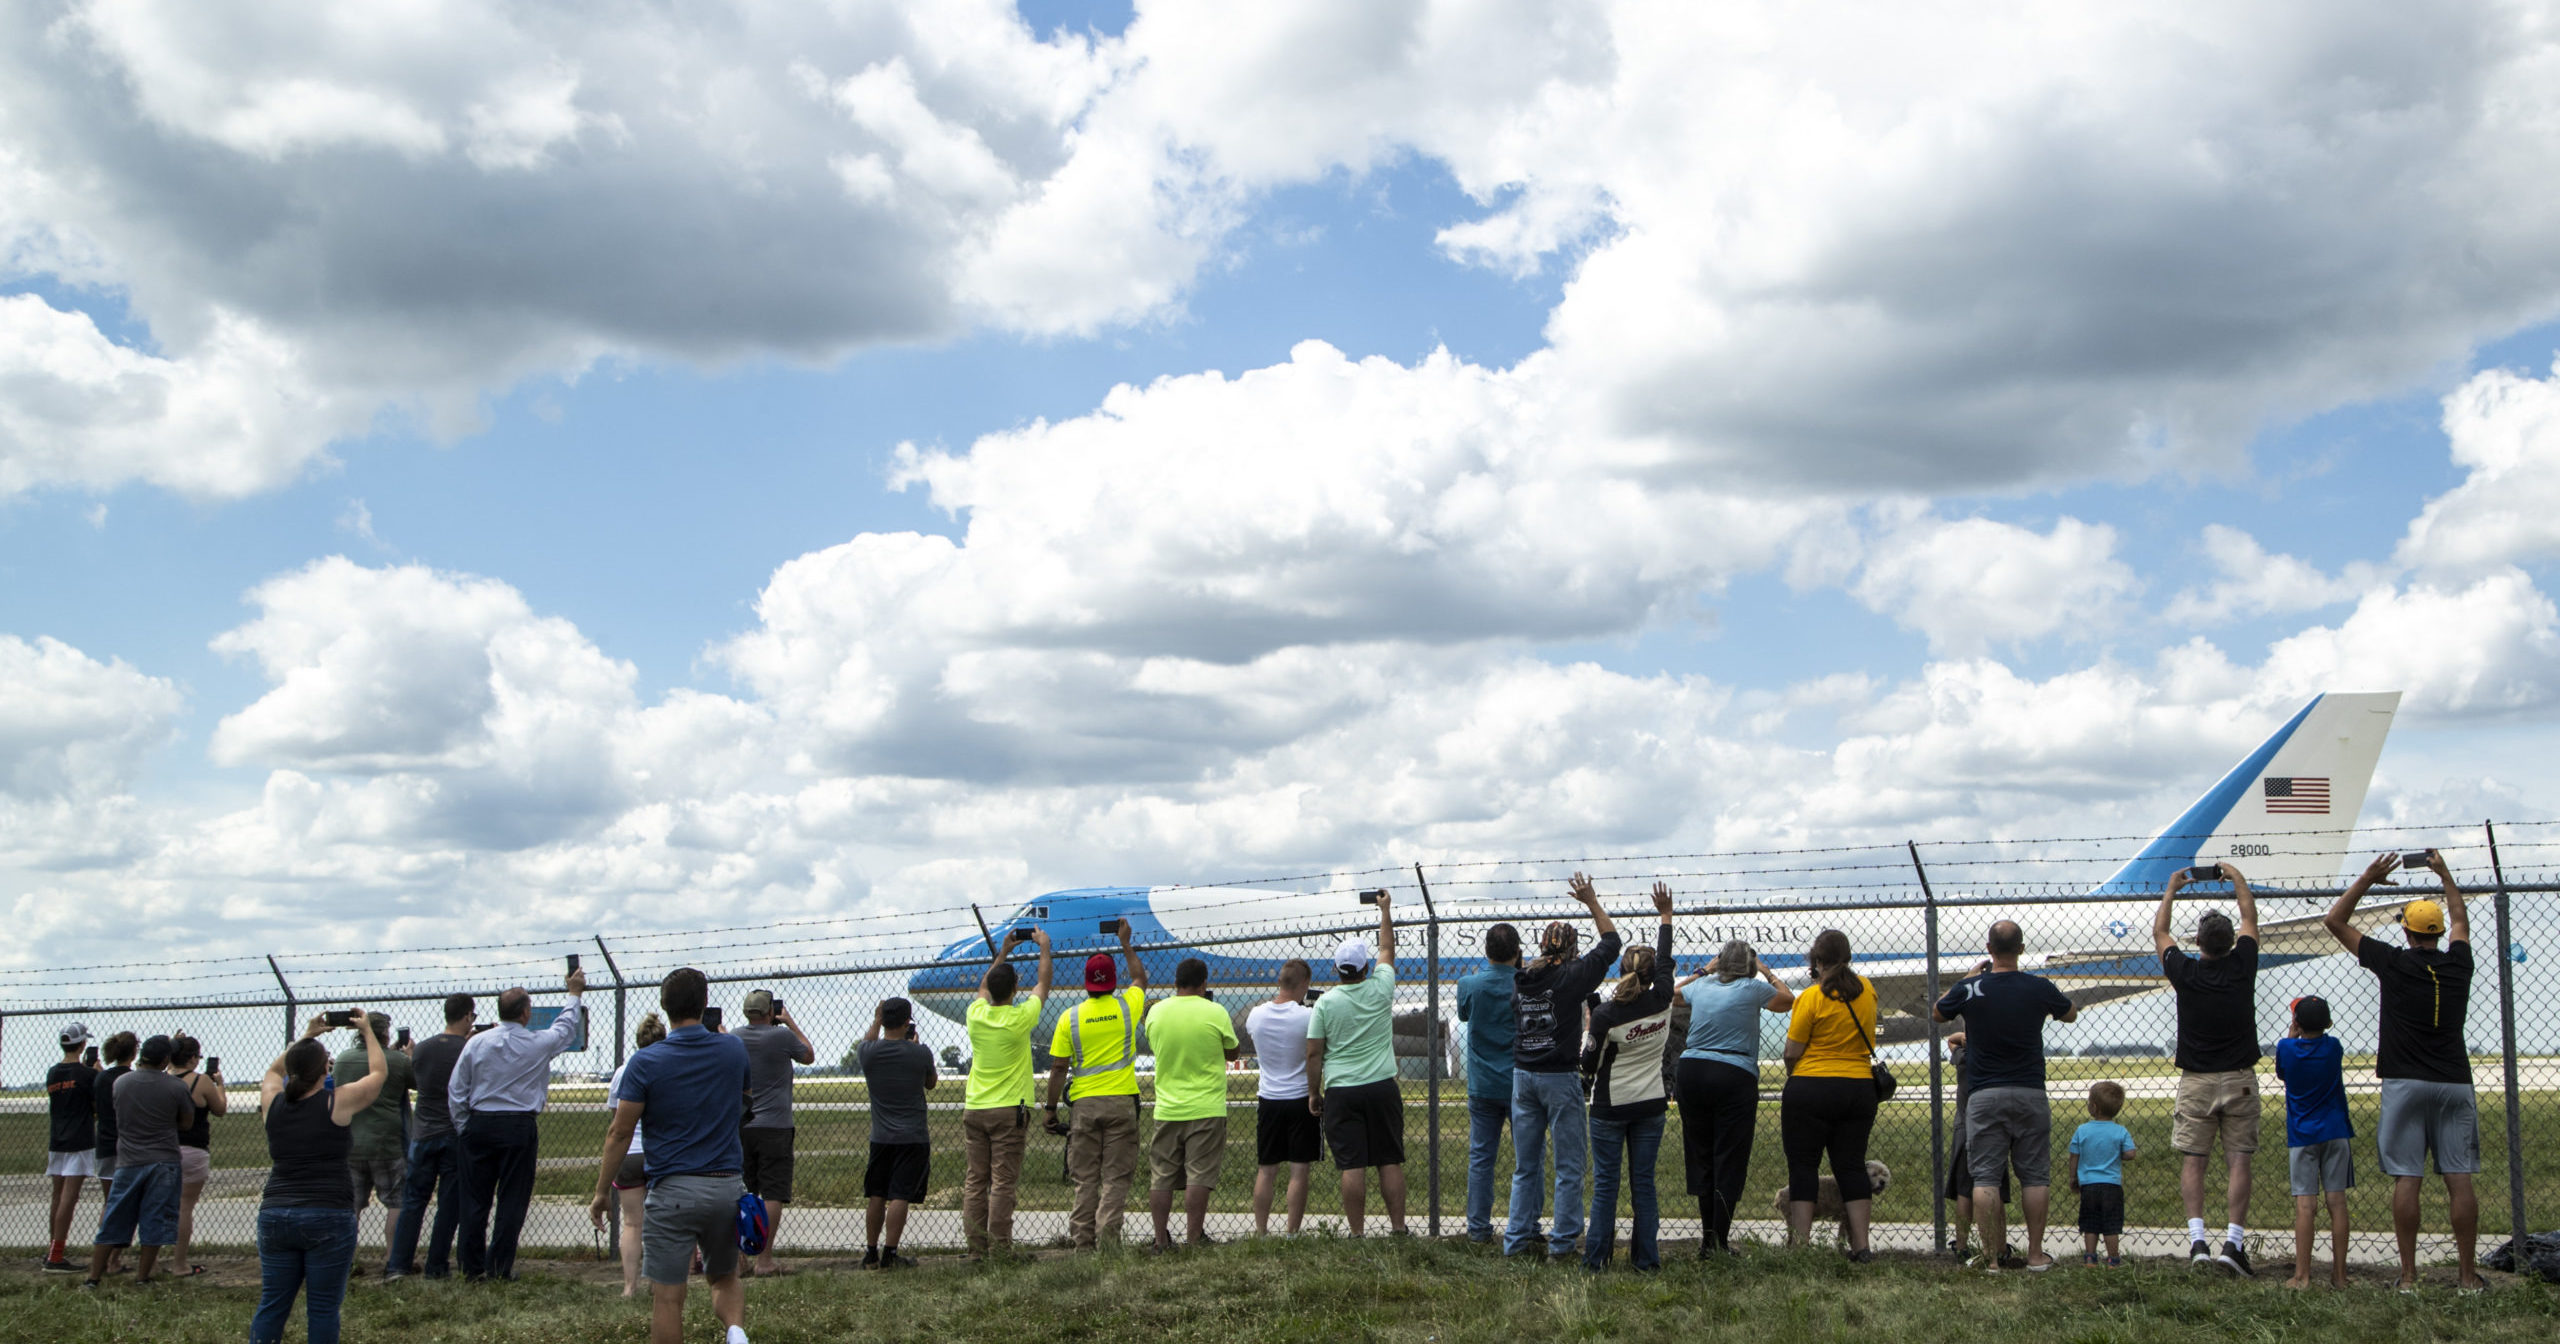 People lean up against a fence as Air Force One takes off on Aug. 18, 2020, after President Donald Trump visited with Iowa leaders in Cedar Rapids, Iowa. Trump attended a disaster recovery briefing at the airport in Cedar Rapids, one of the cities hit hardest by the Aug. 10 derecho that caused extensive damage to electricity infrastructure, homes and farms.